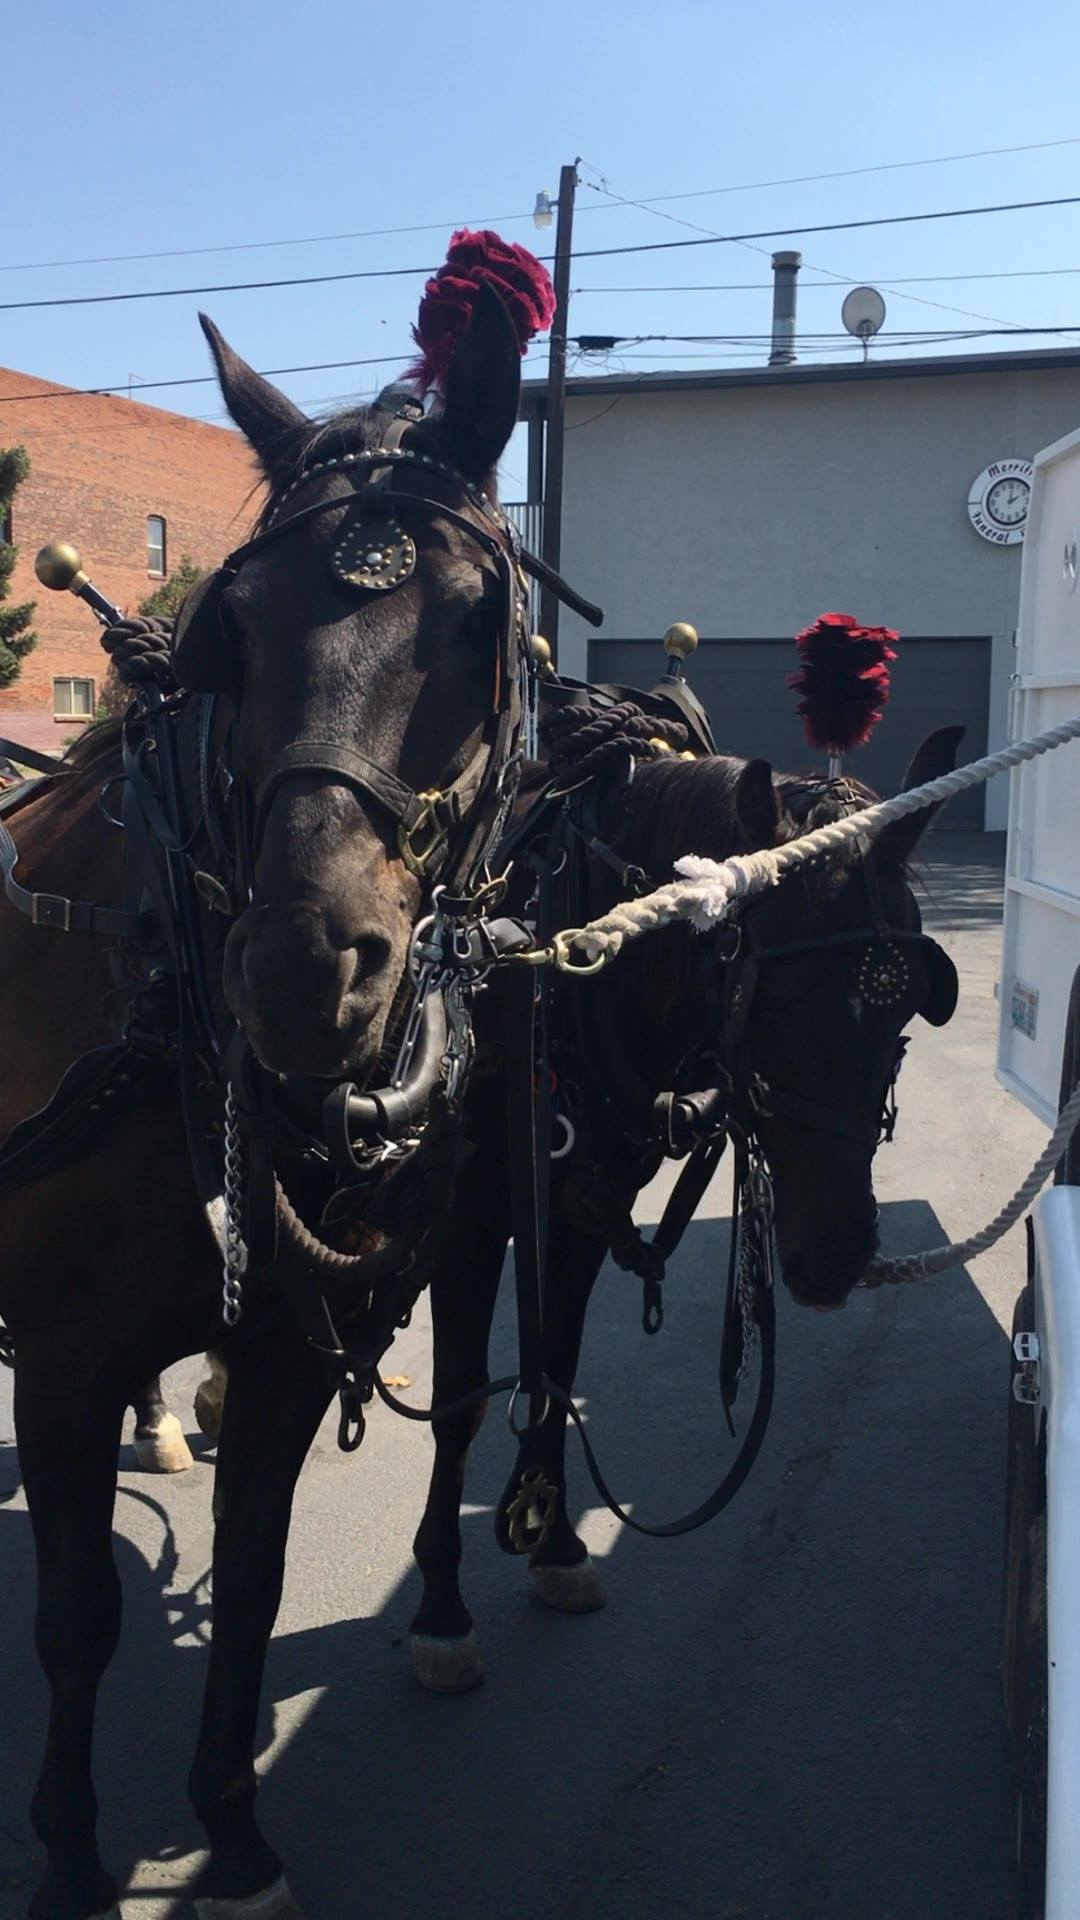 Jack and Jill asked us to share a clip of them horsing around 😊🐴🐴 - they are busy driving for 2 special events today - A quinceanera and a wedding - they're having a great time, stay tuned for pictures!